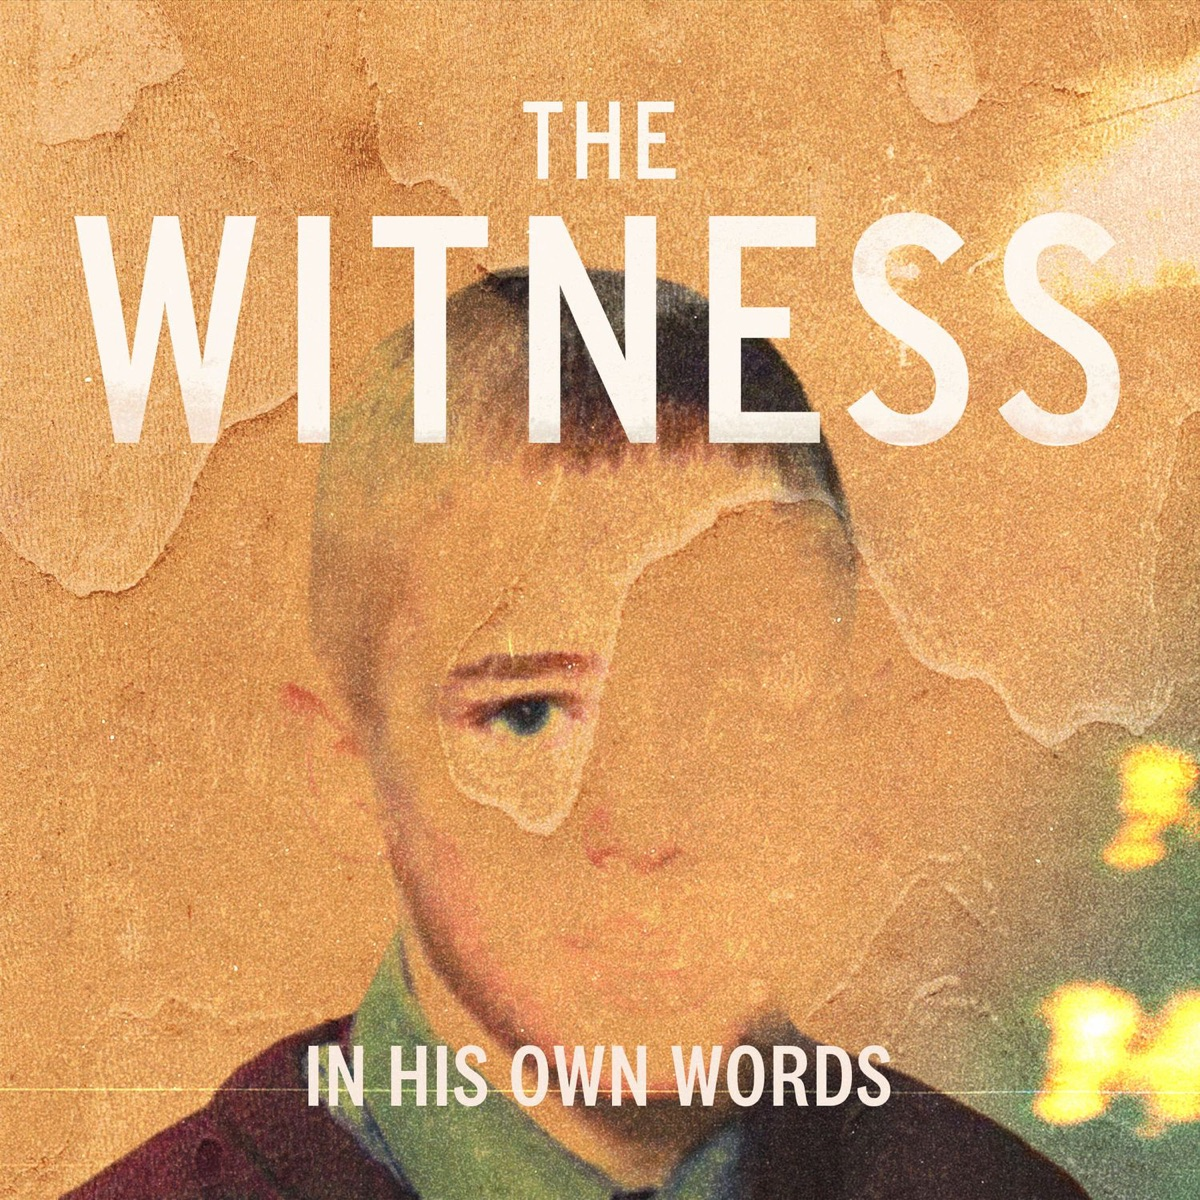 The Witness: In His Own Words